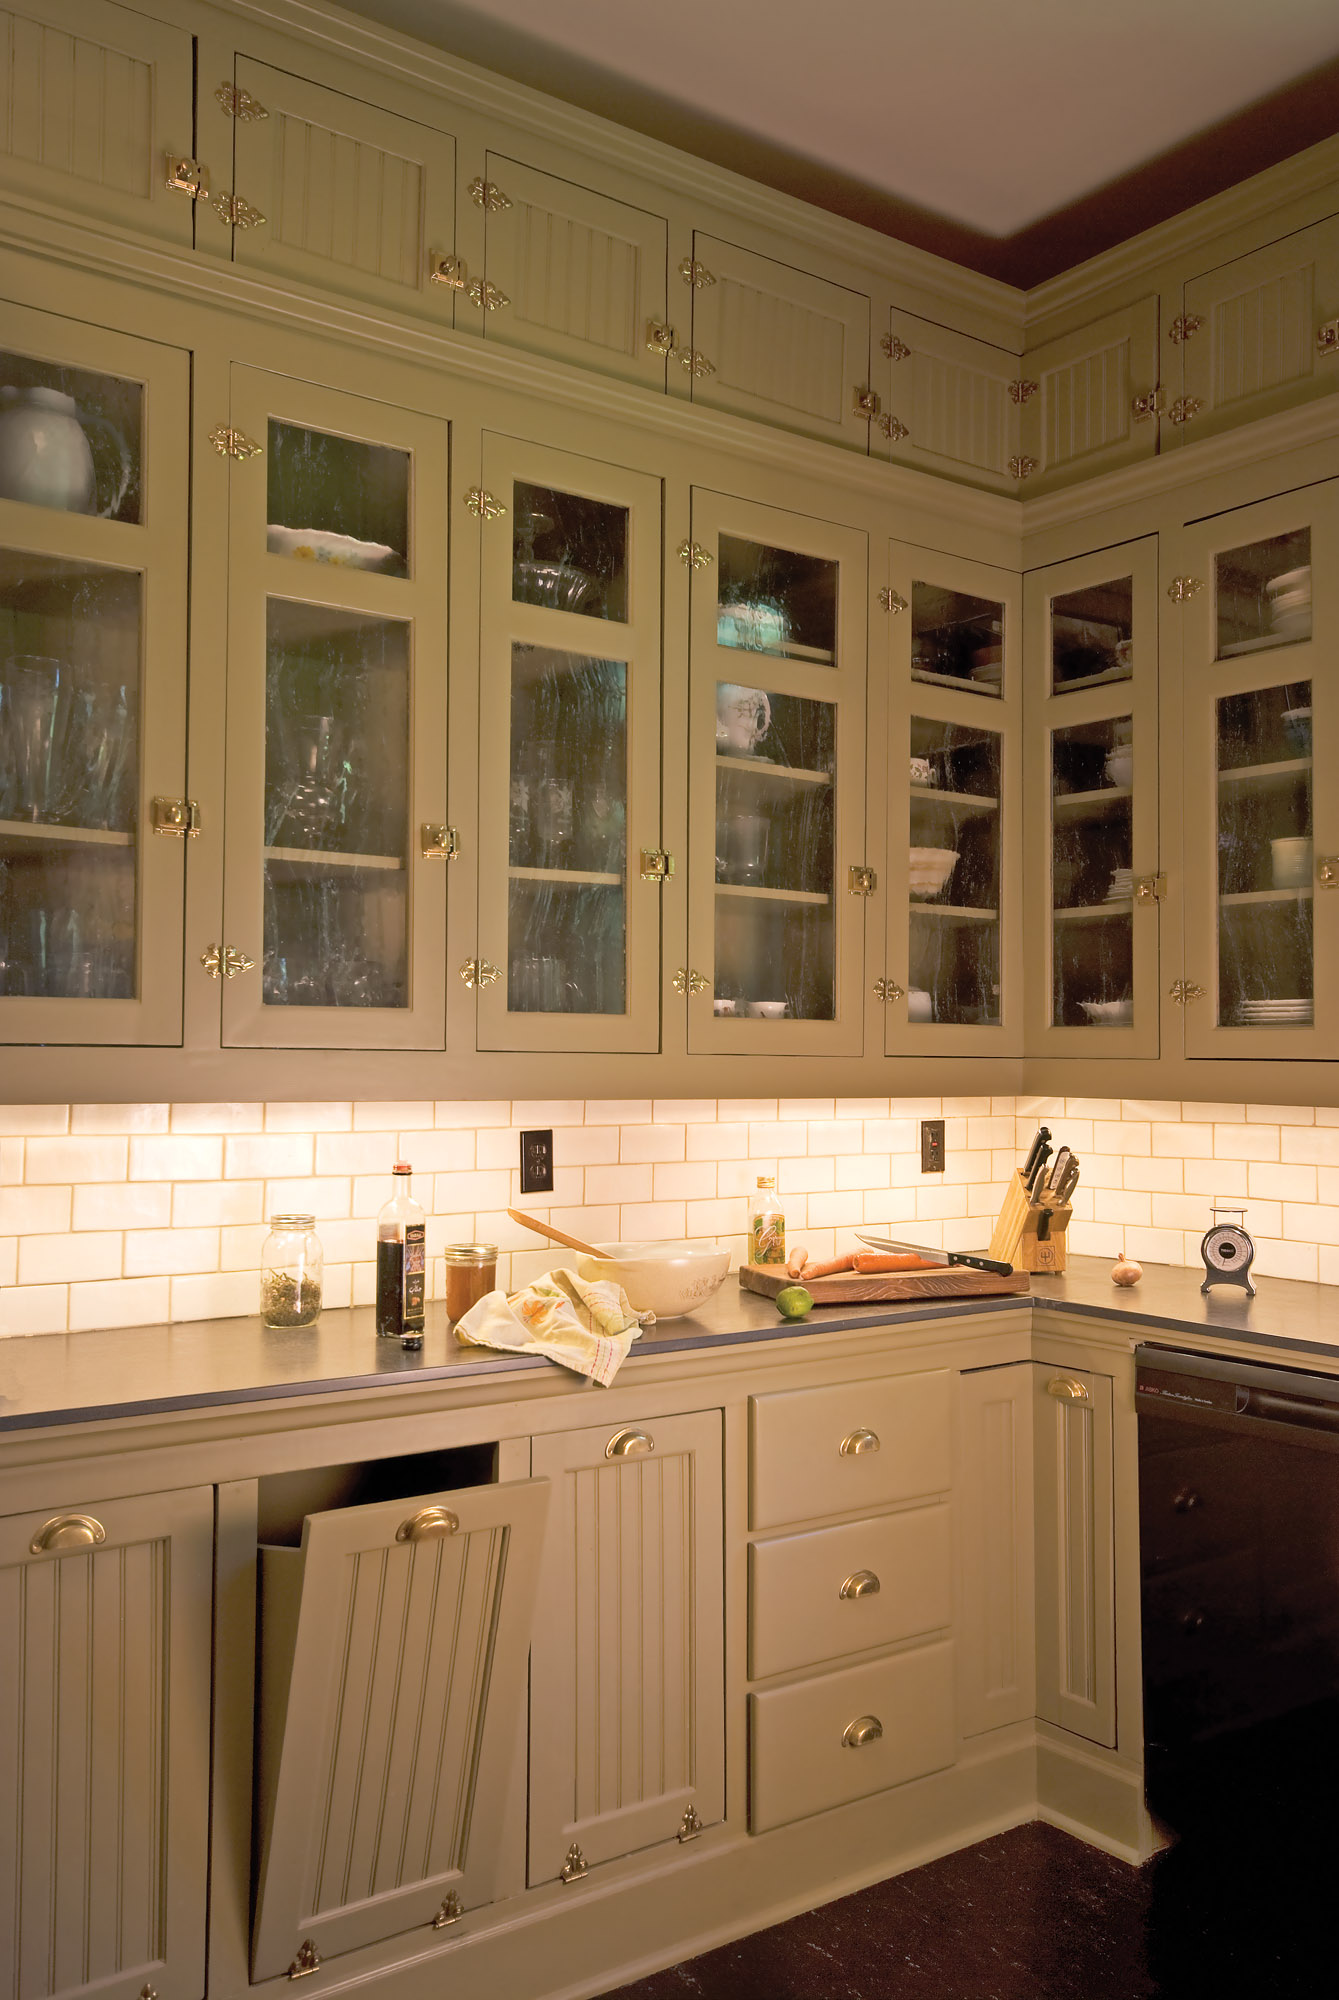 Reproduction is the way to go when outfitting an entire room, like this Arts & Crafts-era kitchen that needed a suite of latches, knobs, and bin pulls.